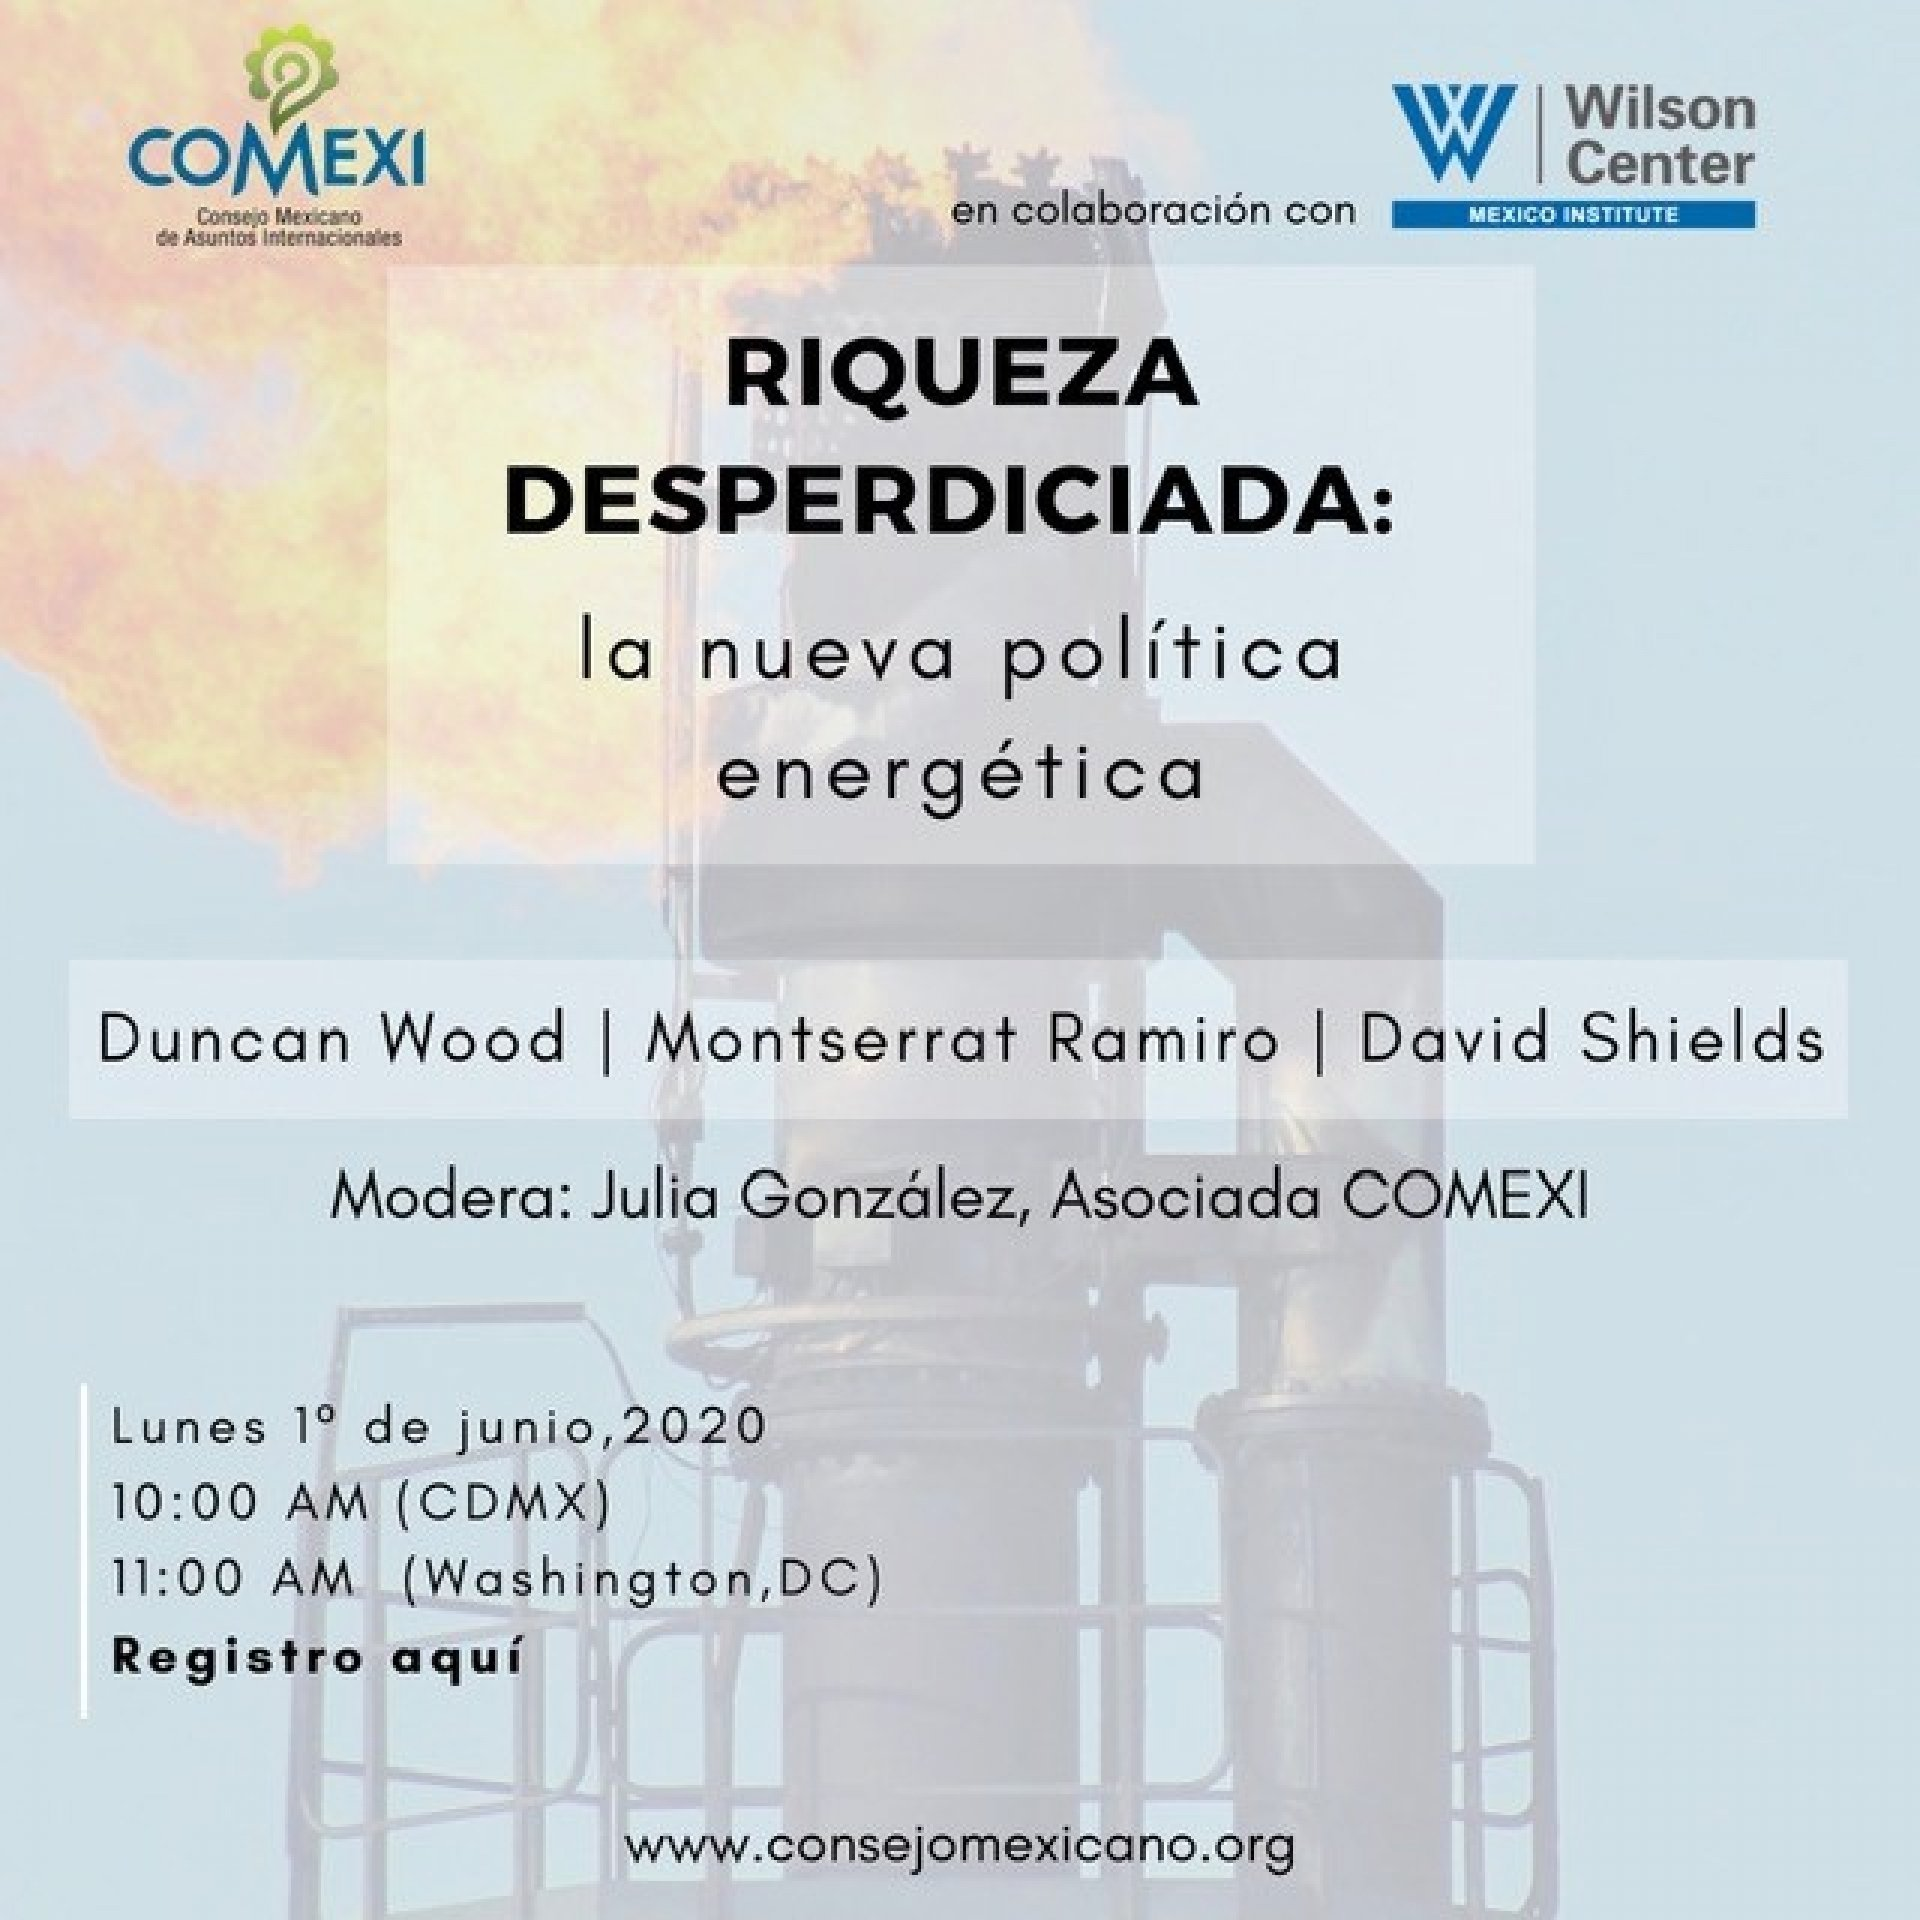 COMEXI Wilson Center event flyer